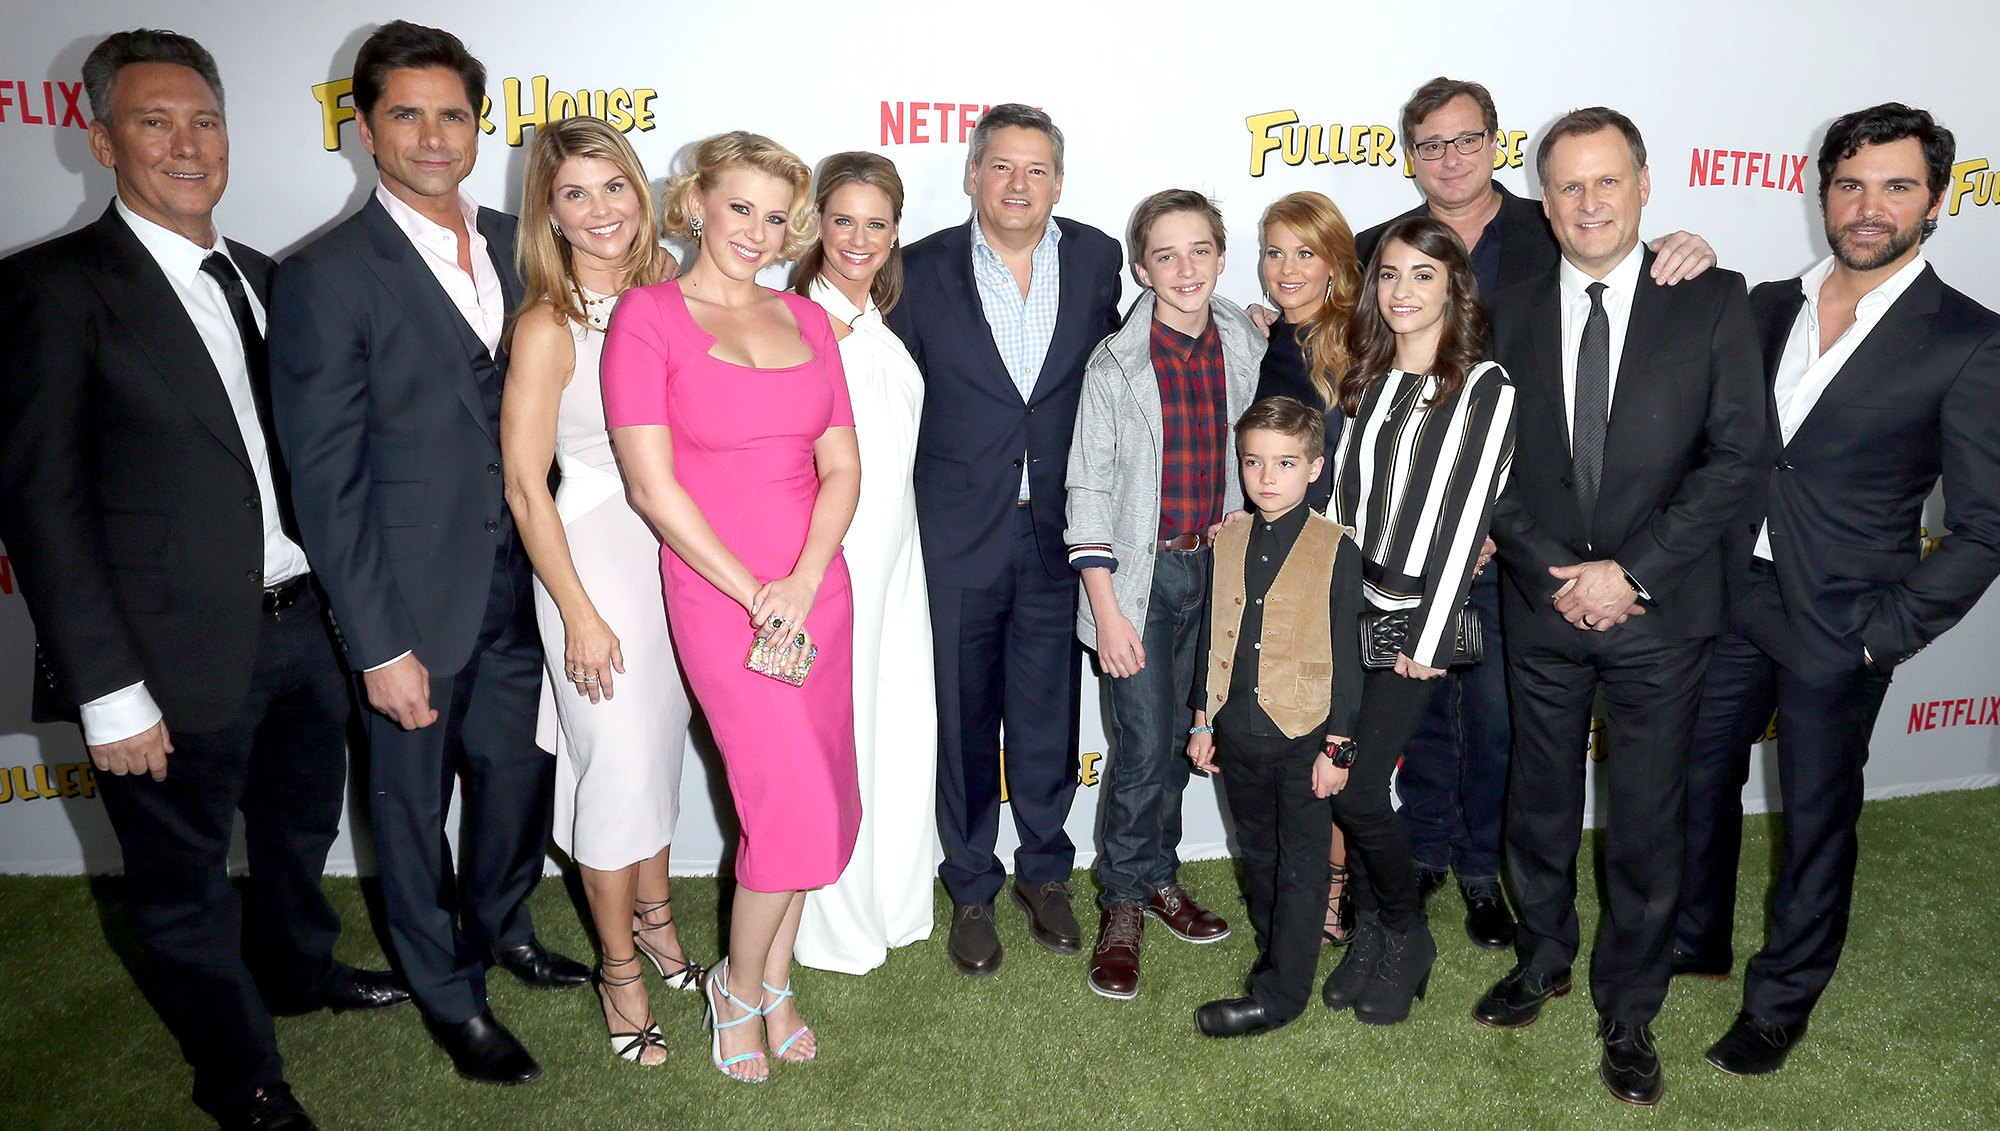 Fuller House Returns Season 5 Cast